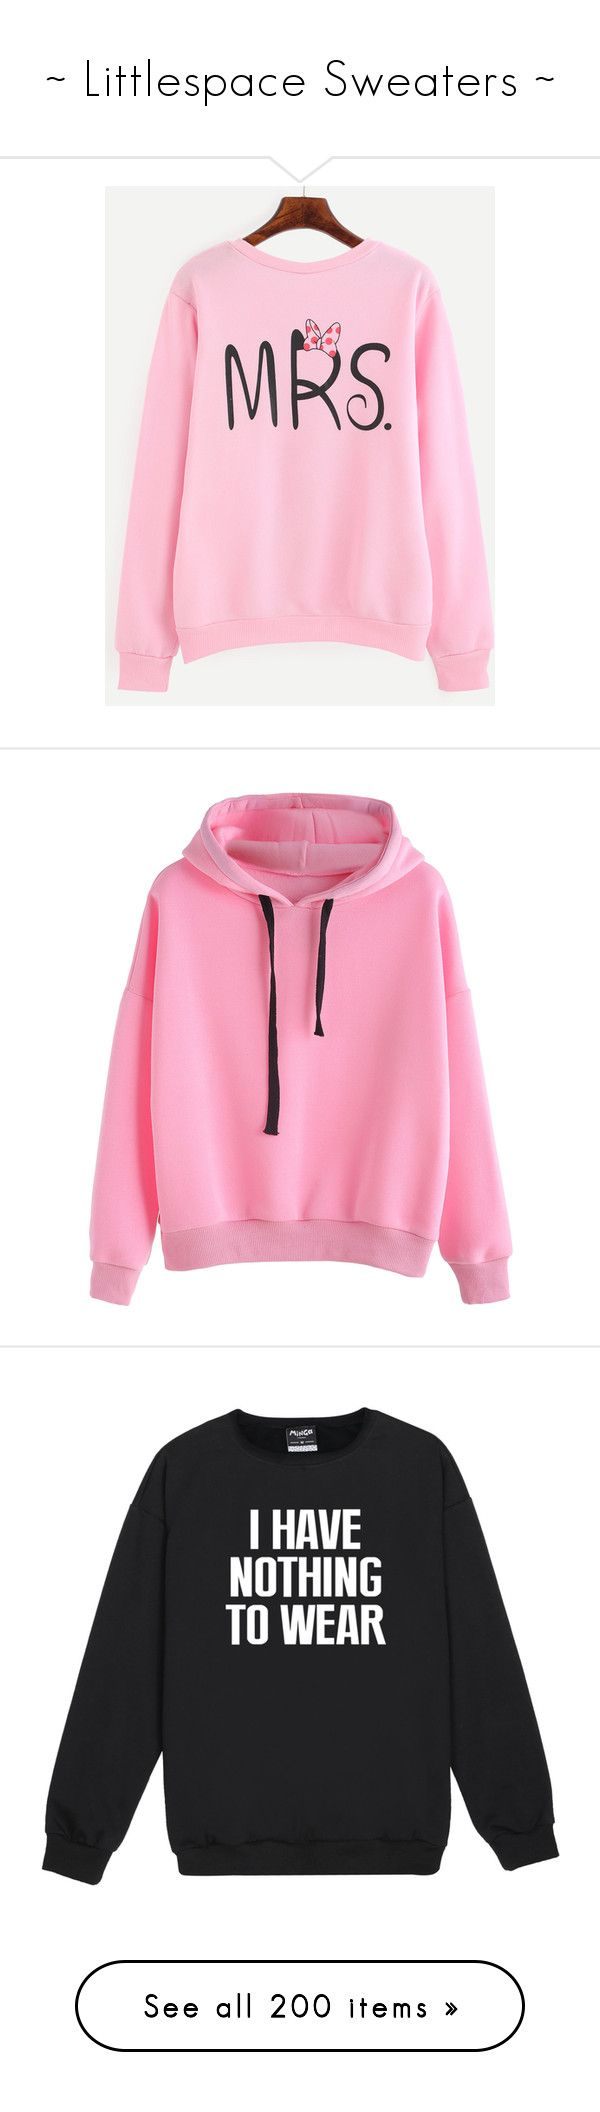 """""""~ Littlespace Sweaters ~"""" by happy-lama ❤ liked on Polyvore featuring tops, hoodies, sweatshirts, pink, sweatshirt, graphic pullover, graphic tops, graphic print sweatshirts, sweater pullover and sports tops"""